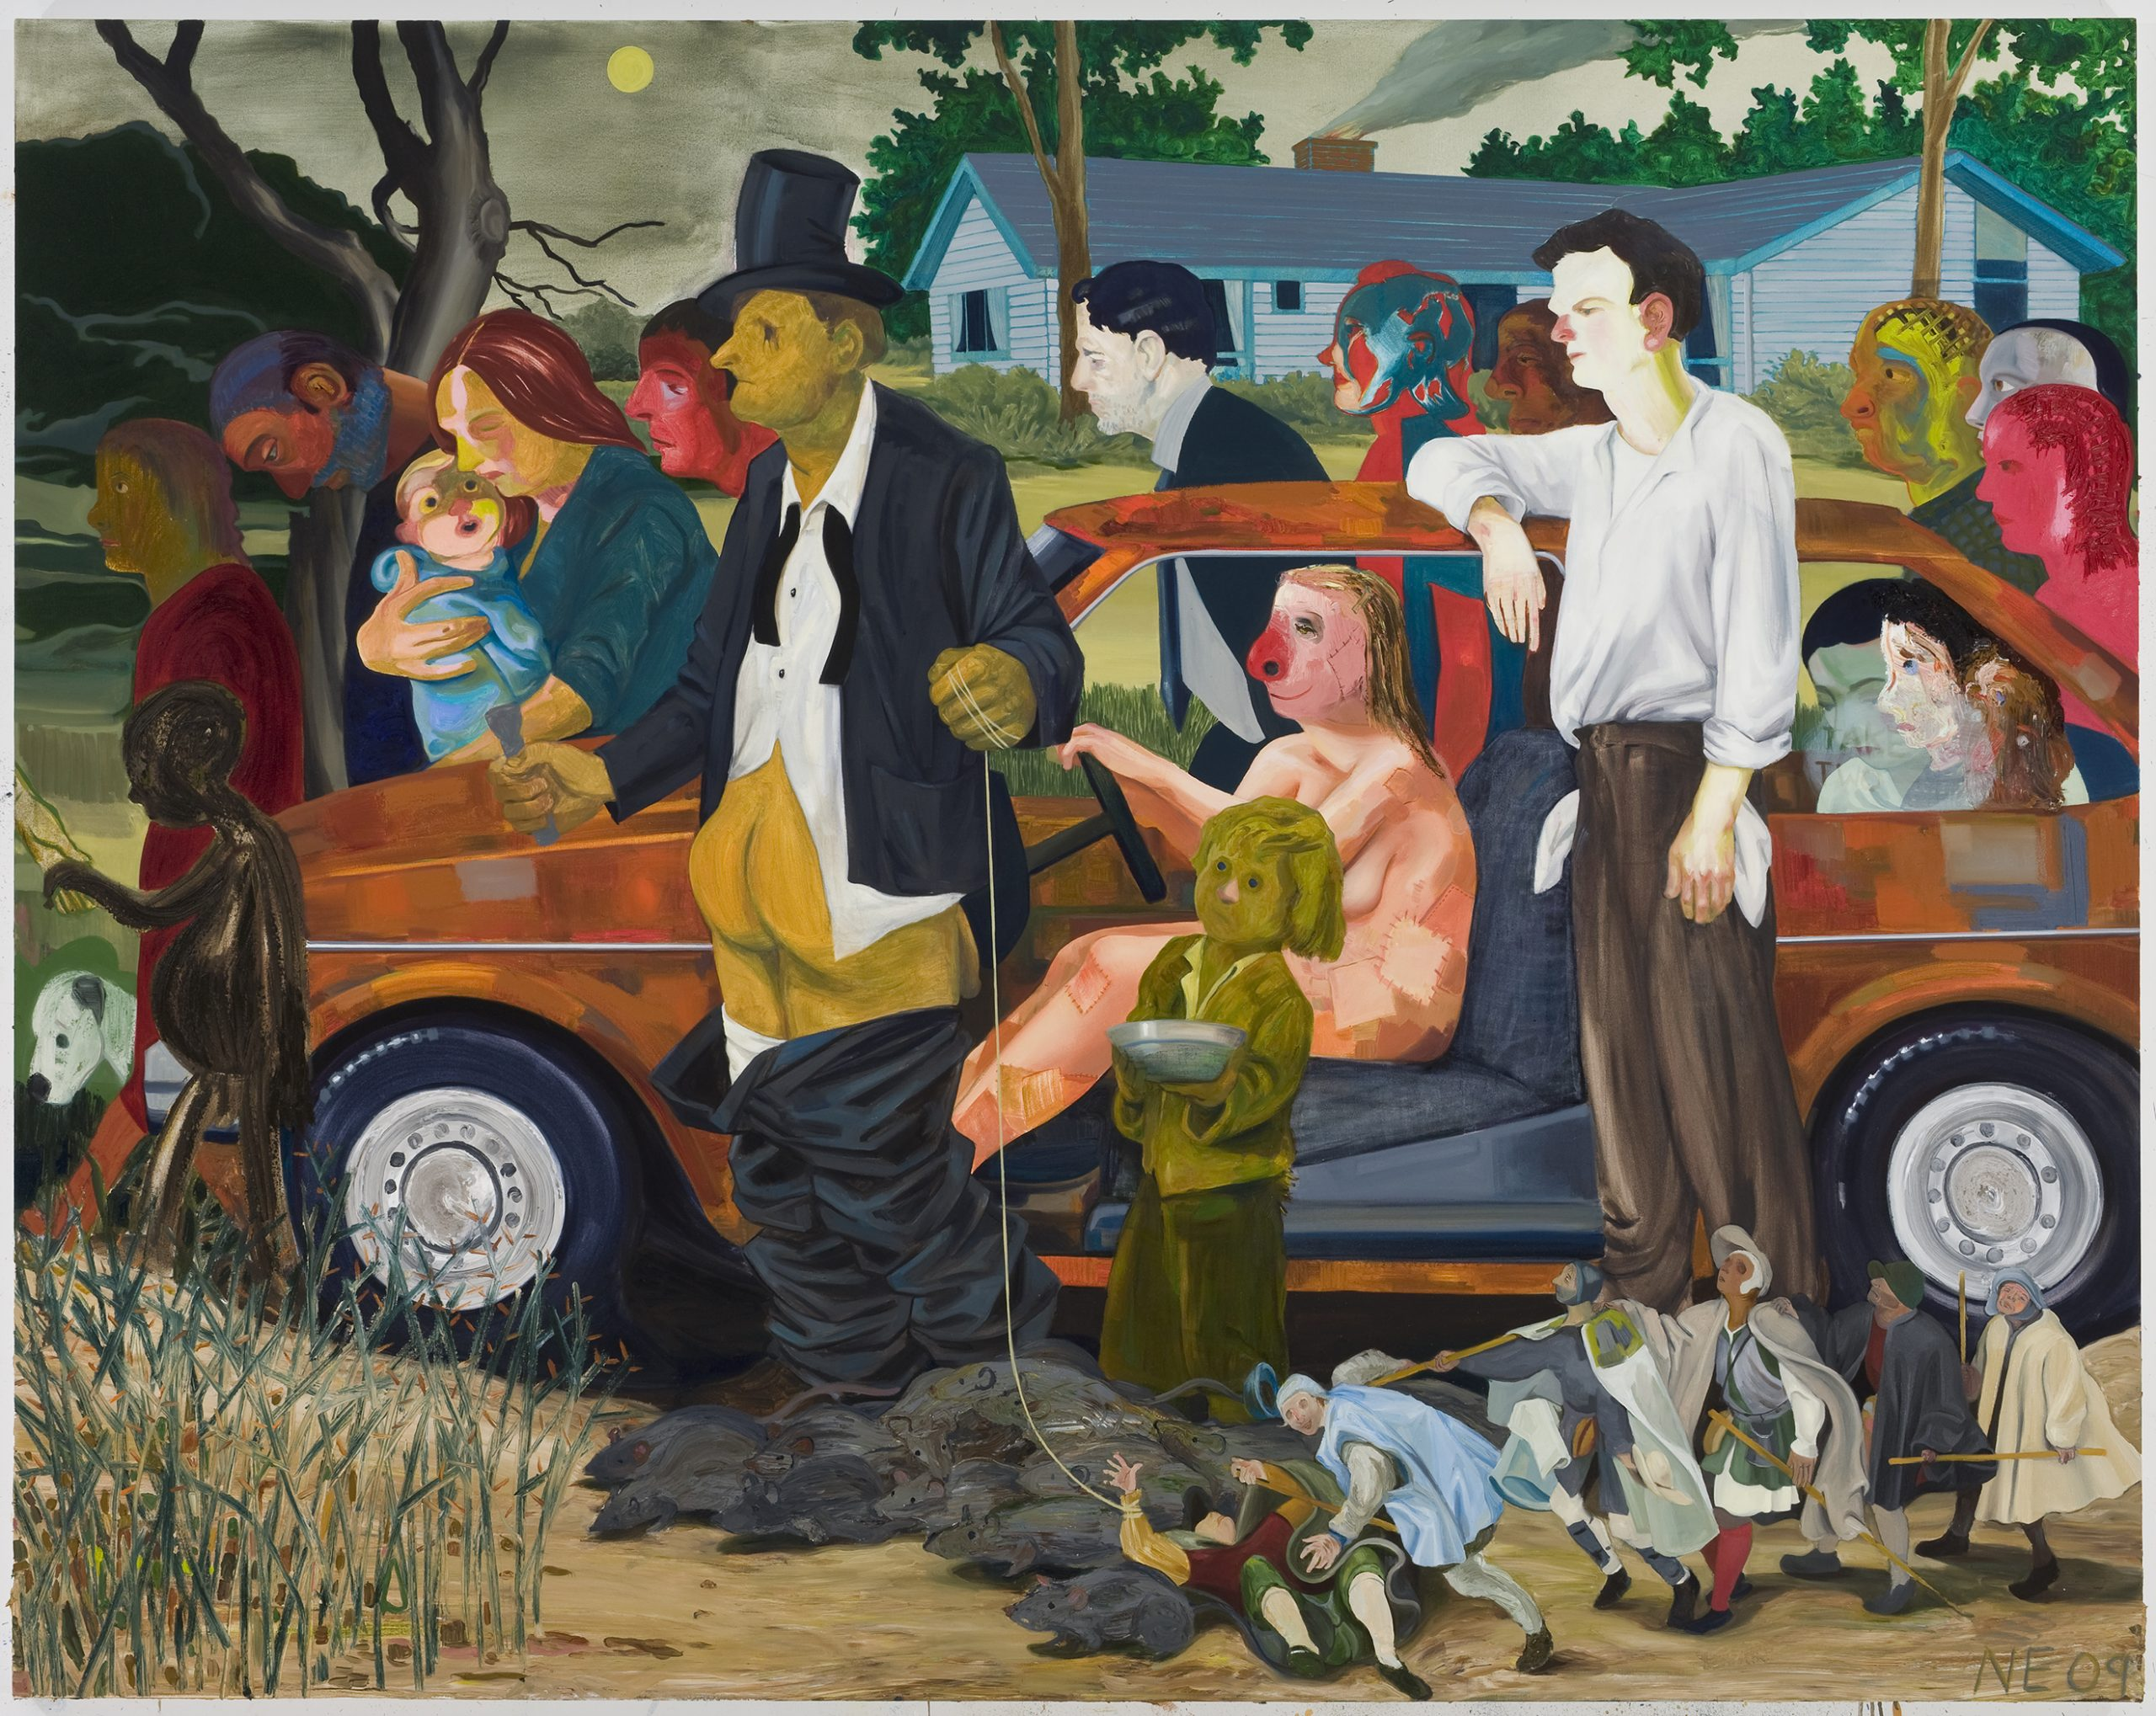 A painting of multiple characters marching alongside a car in subdued but vibrant colors.